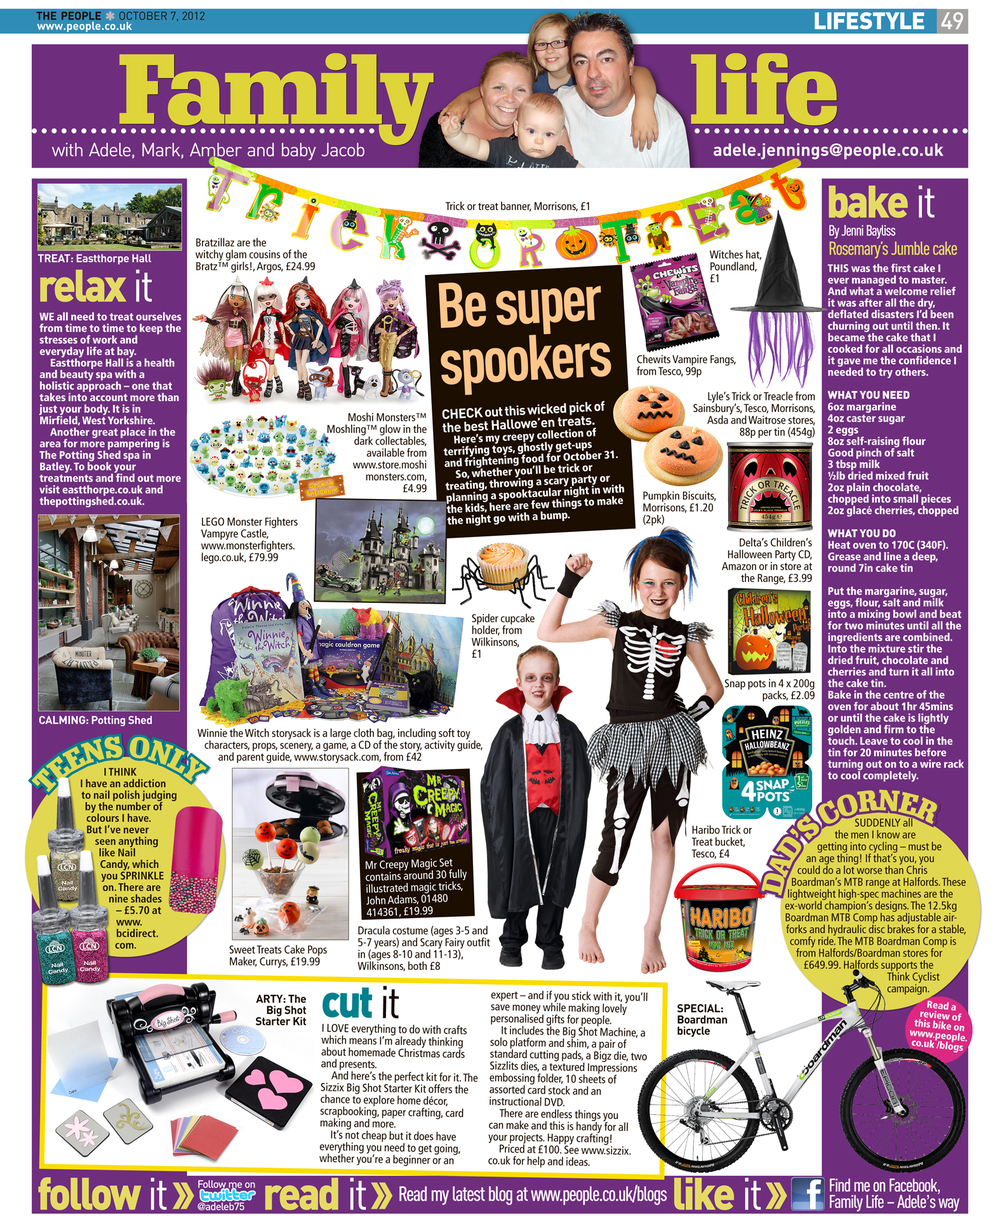 Published in The Sunday People, October 7, 2012